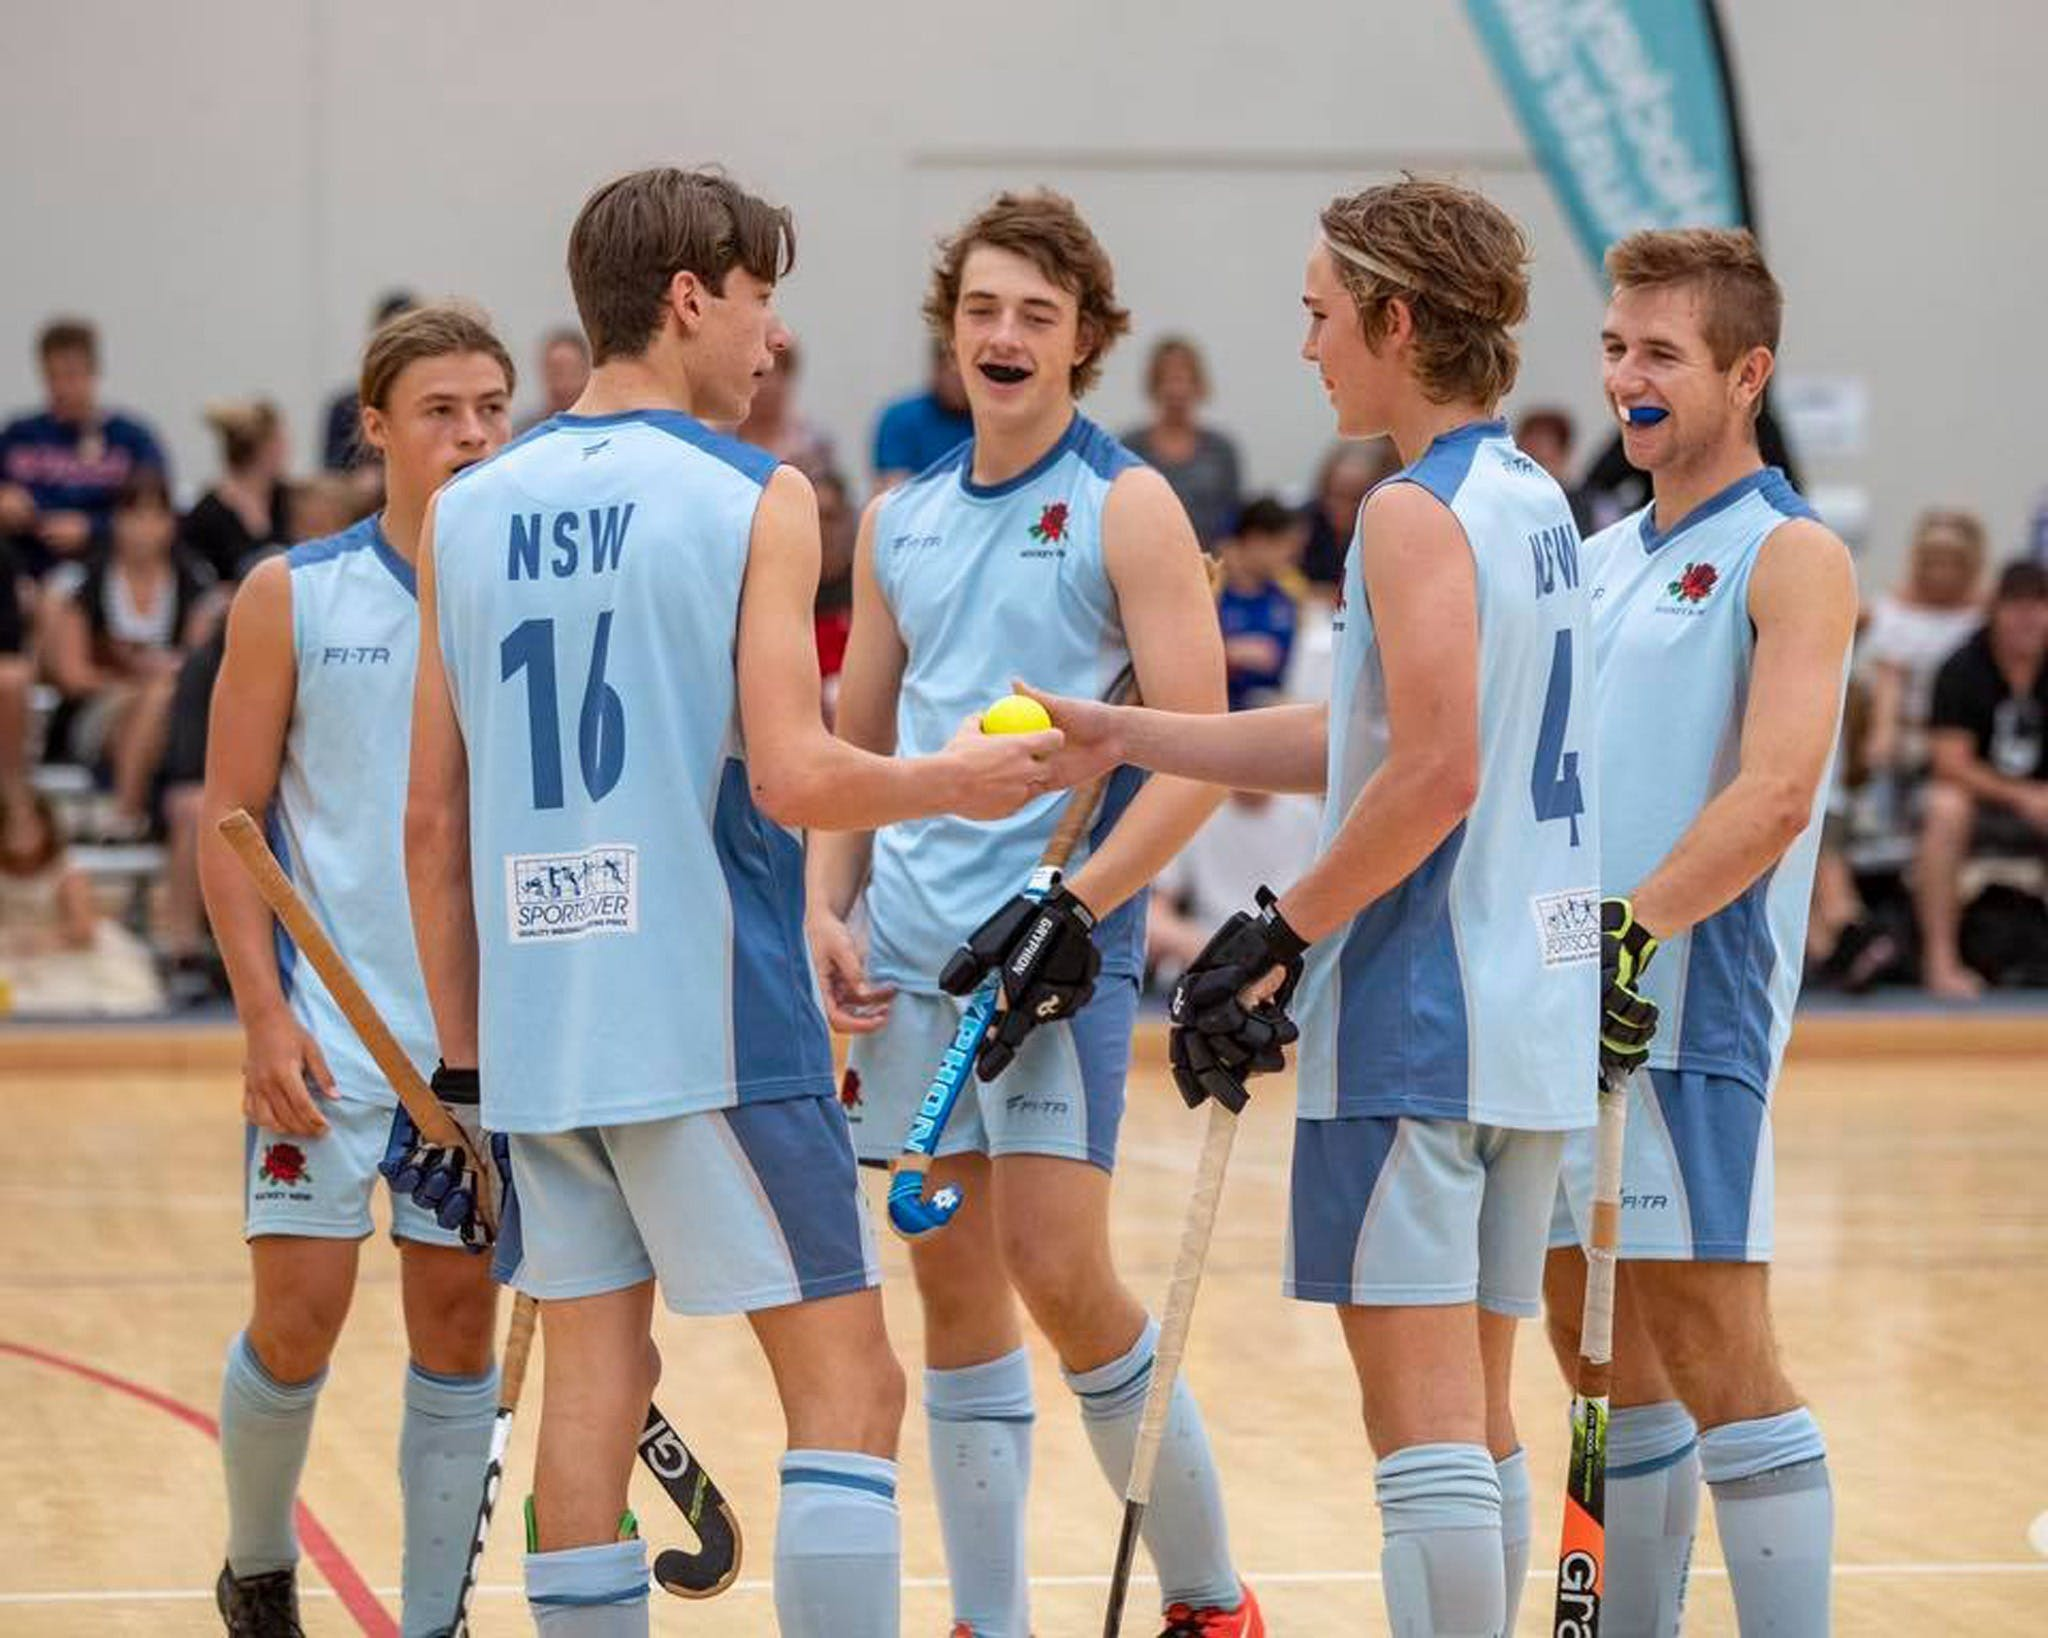 Hockey NSW Indoor State Championship  Open Men - Pubs Sydney